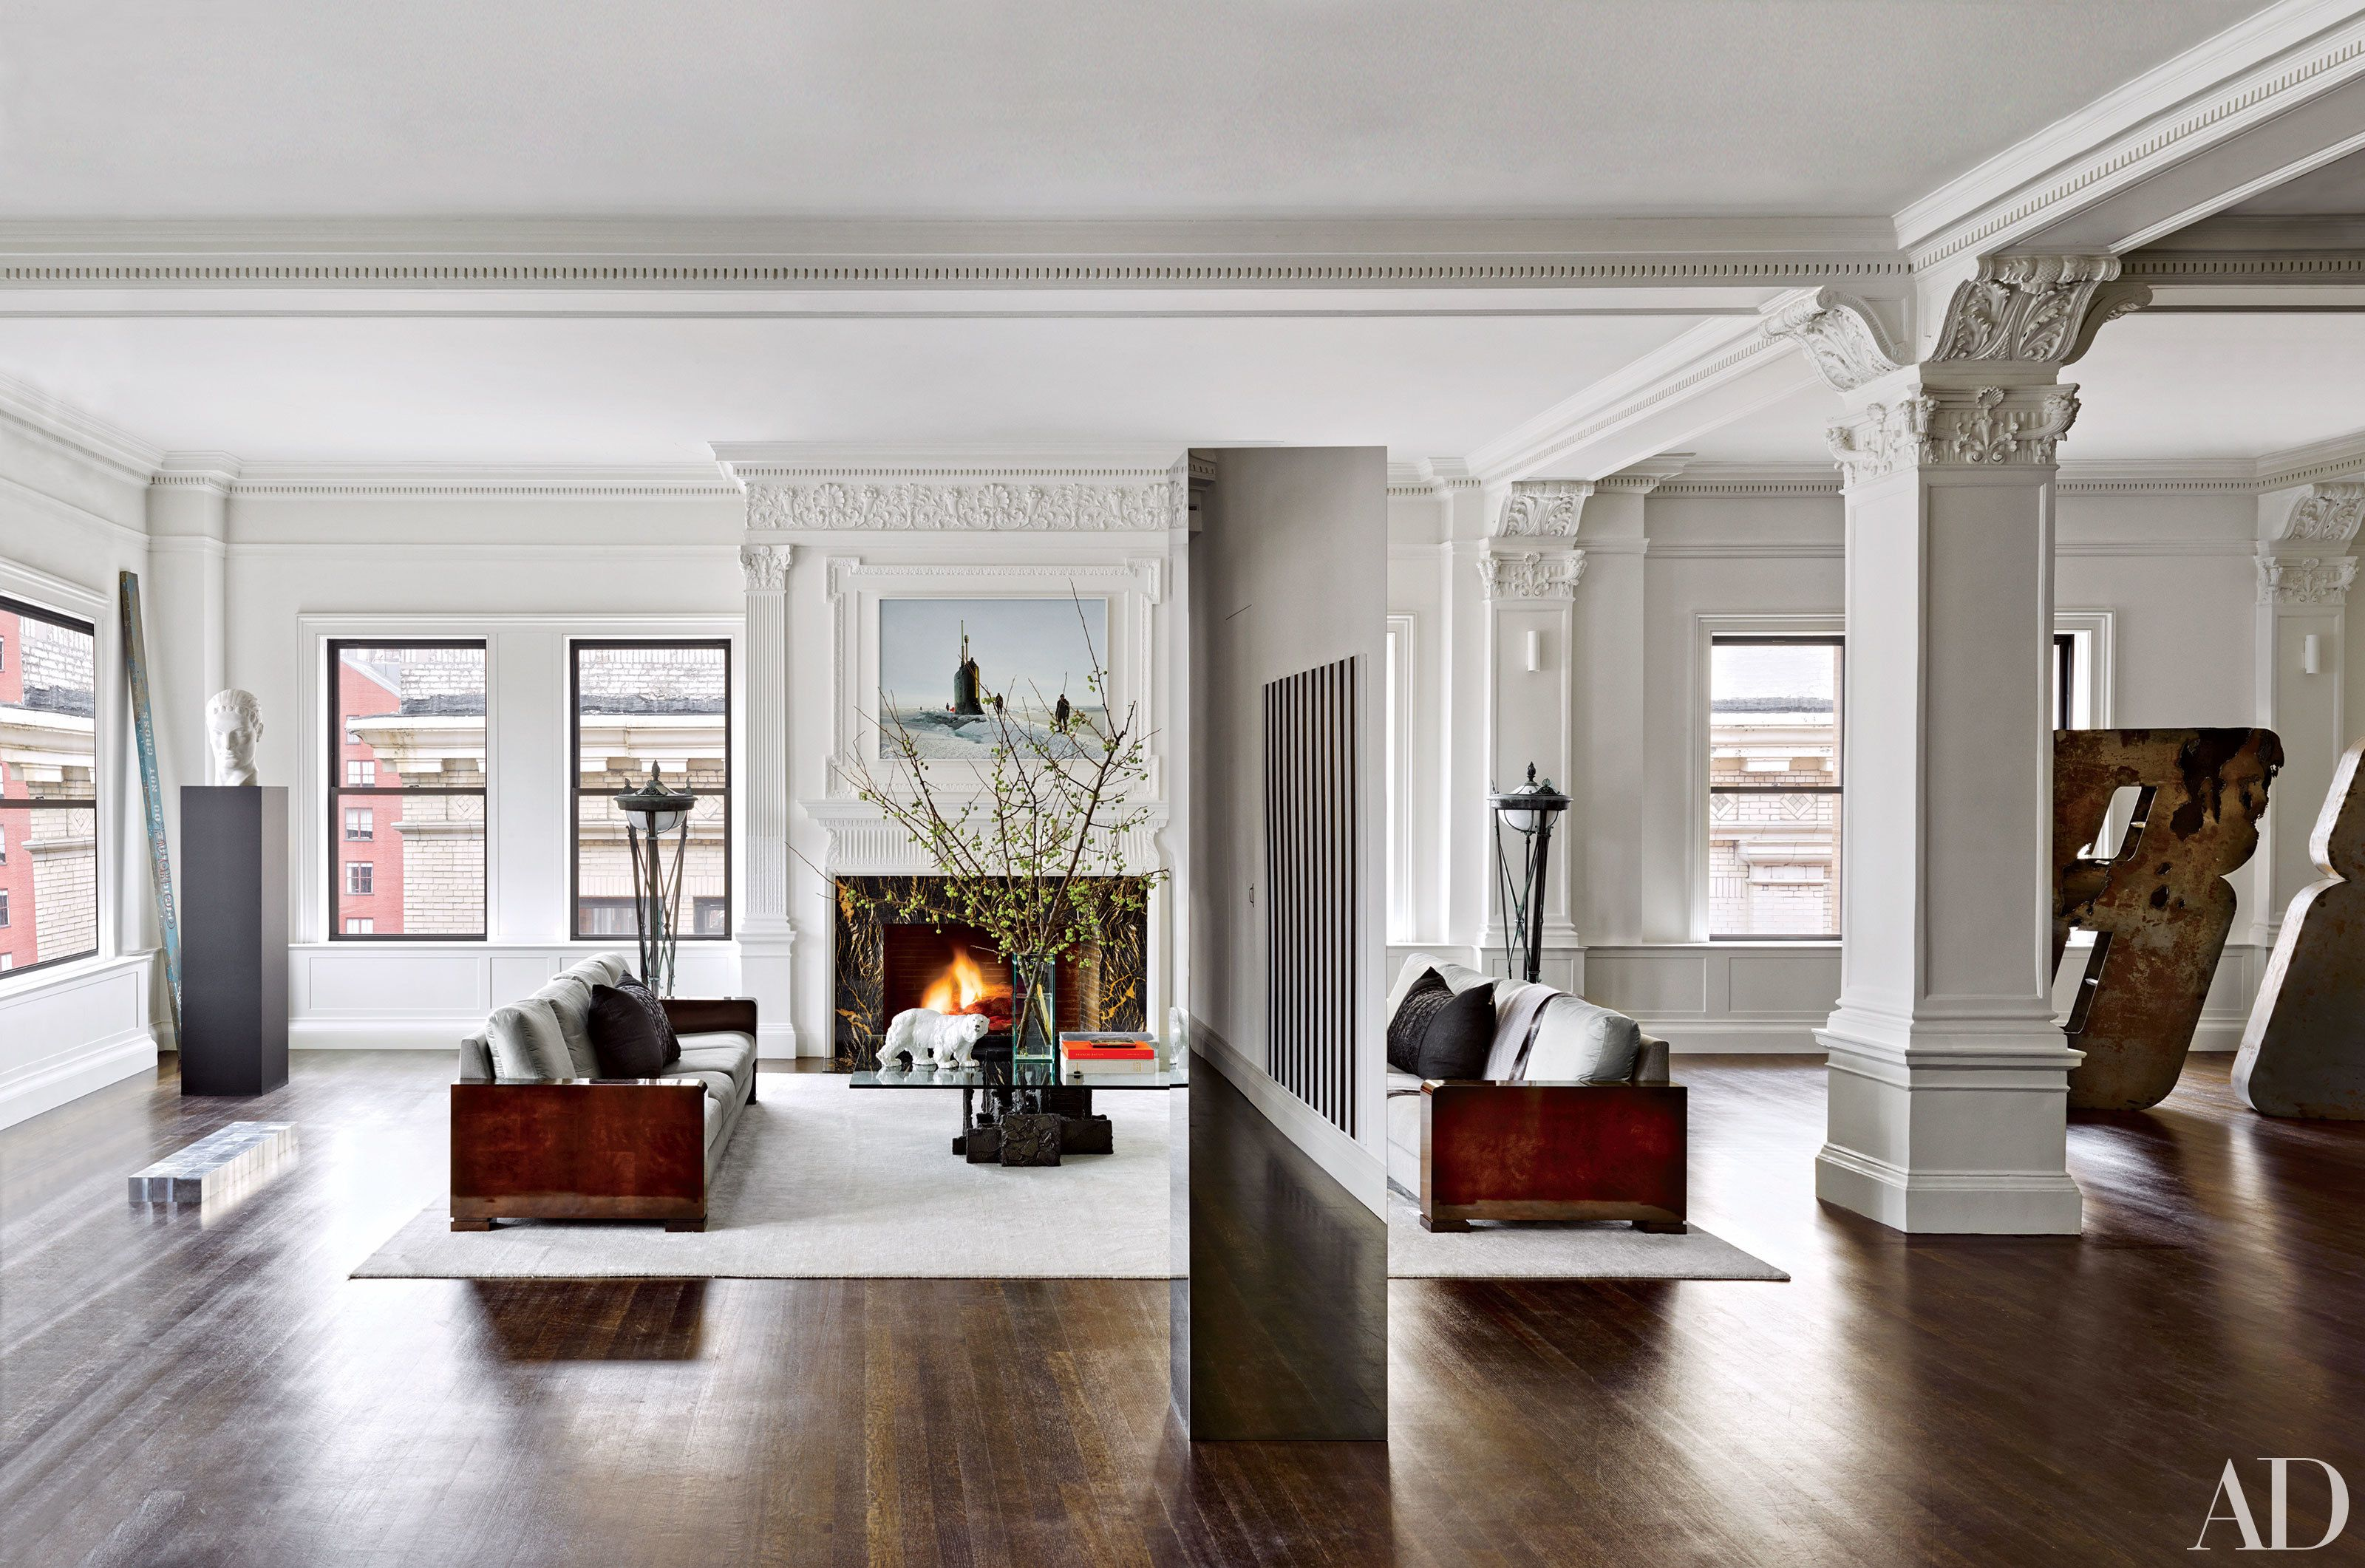 28 Living Rooms With Cozy Fireplaces - Architectural Digest